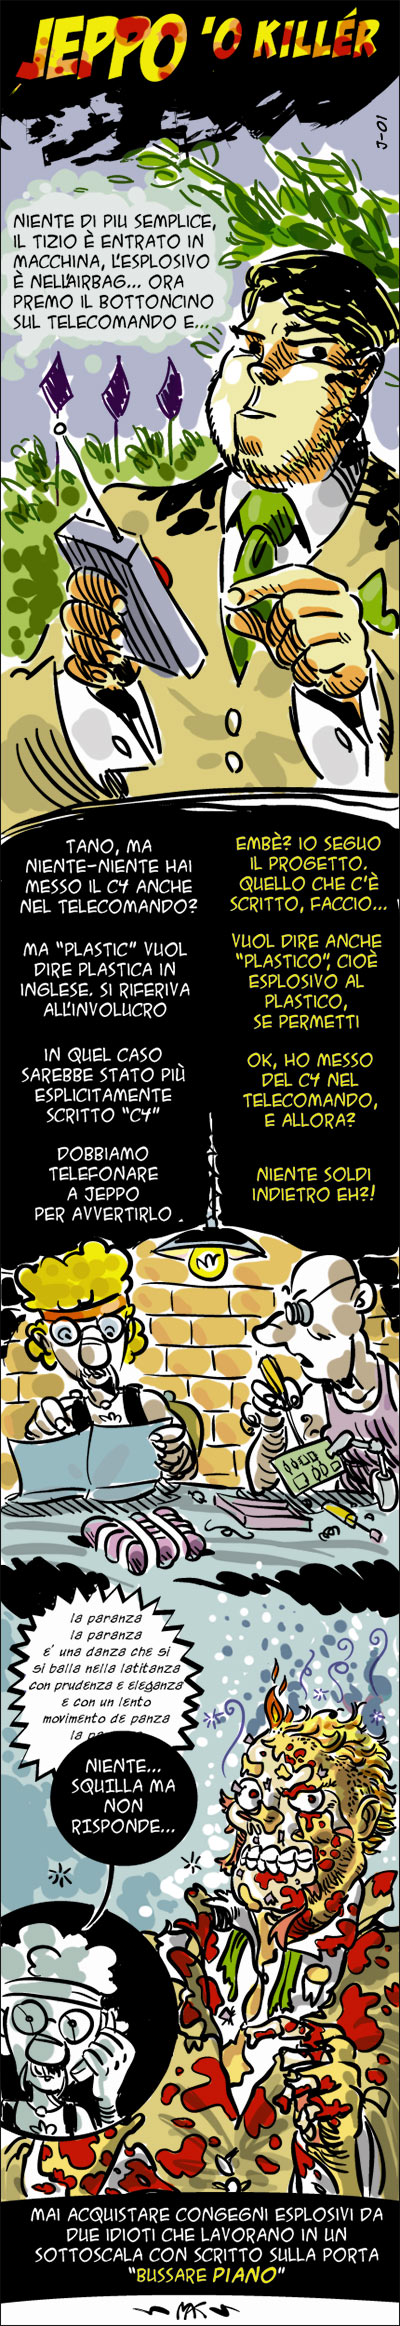 Jeppo o' killèr, Makkox per Webgol.it, 001